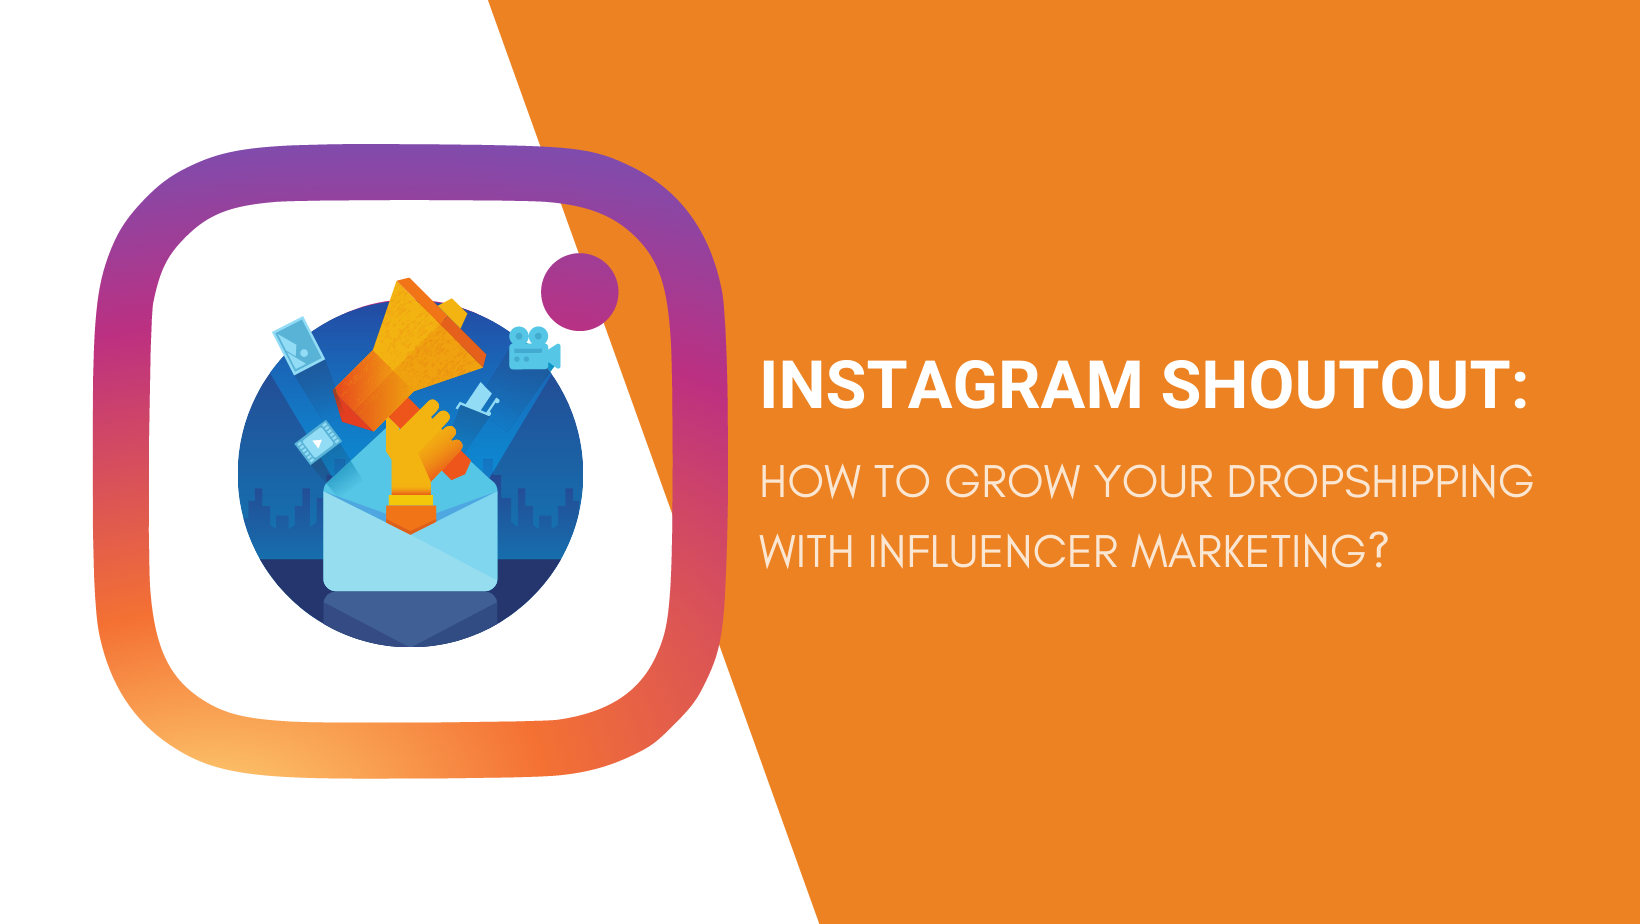 INSTAGRAM SHOUTOUT HOW TO GROW YOUR DROPSHIPPING WITH INFLUENCER MARKETING